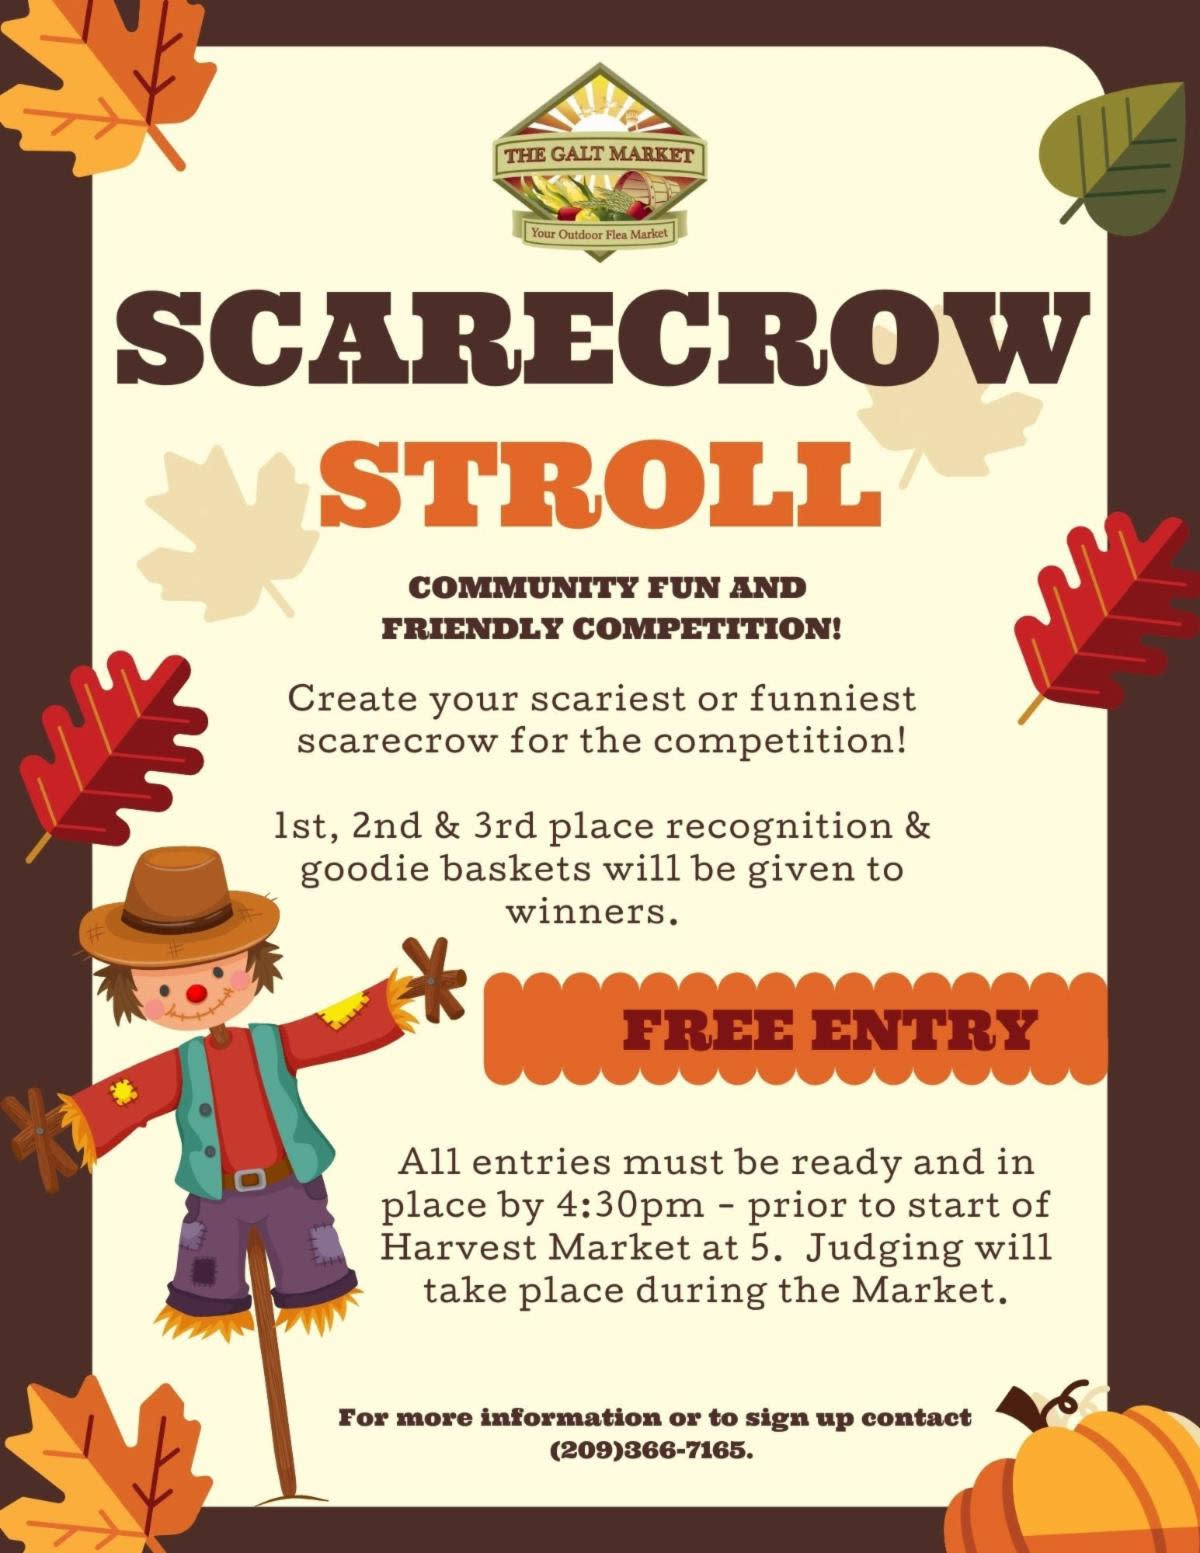 Scarecrow Stroll, Sat., 10/01/21, 4:30pm-8pm, create your scariest or funniest scarecrow, free entry, prize for top 3.